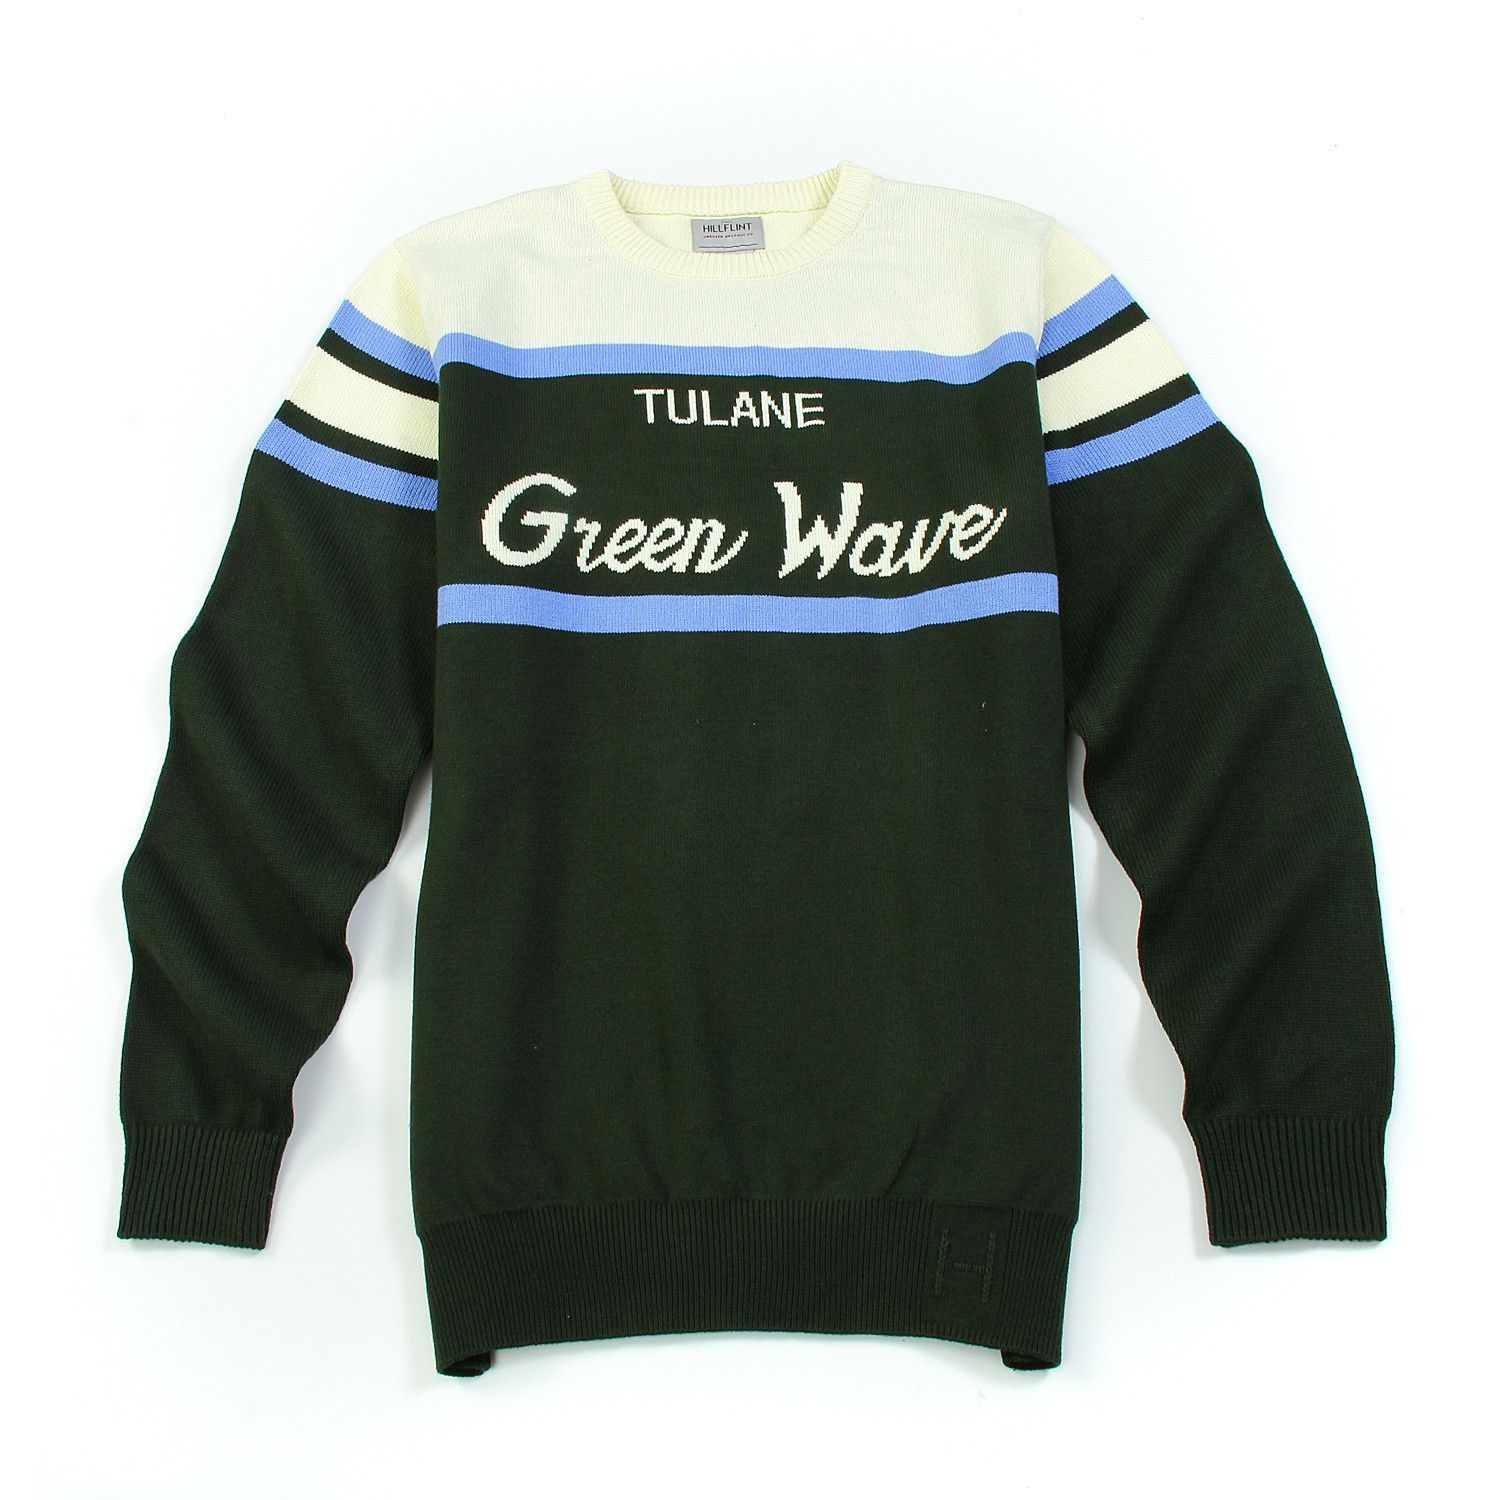 Home college tulane green wave tulane green wave silver plated - Tulane Vintage Tailgate Sweater